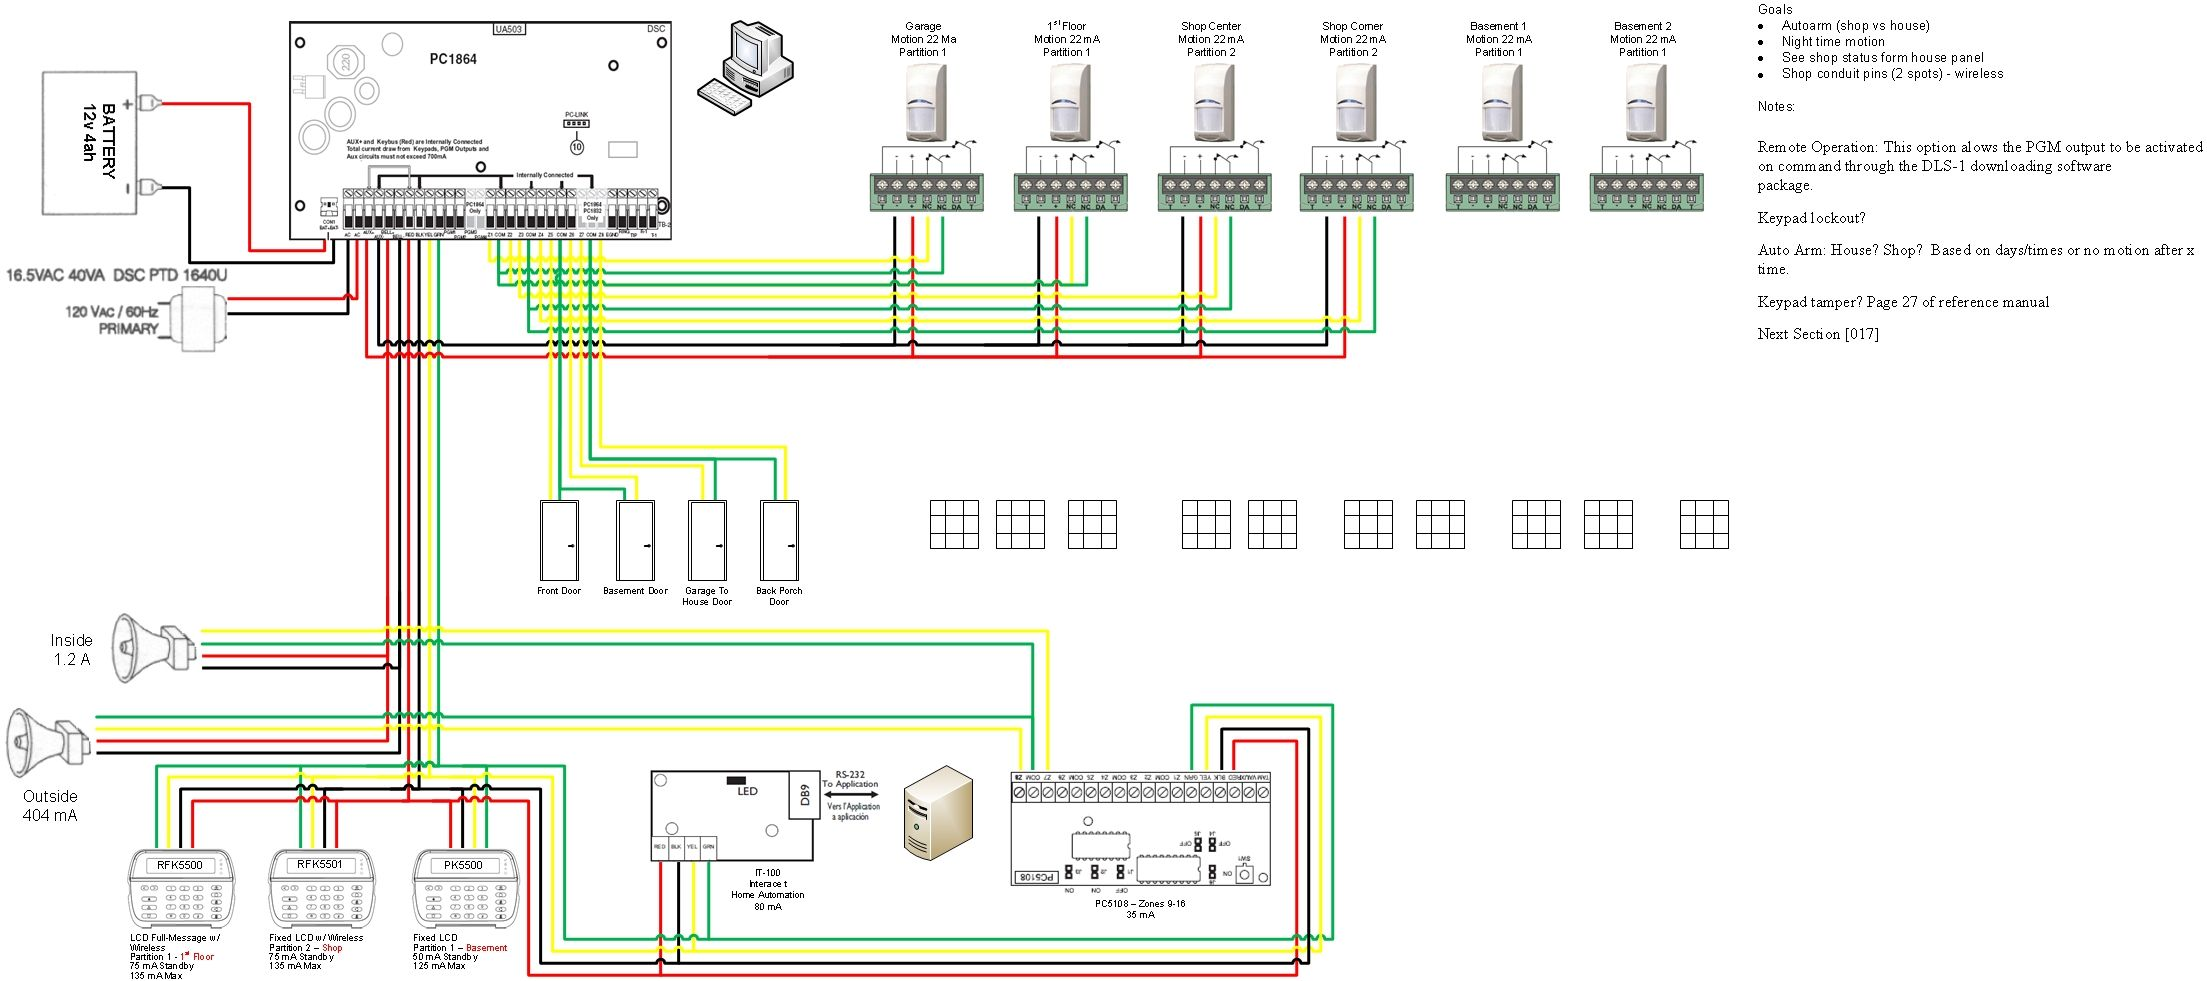 Security System Wiring Diagrams Diagram Inside Motorcycle